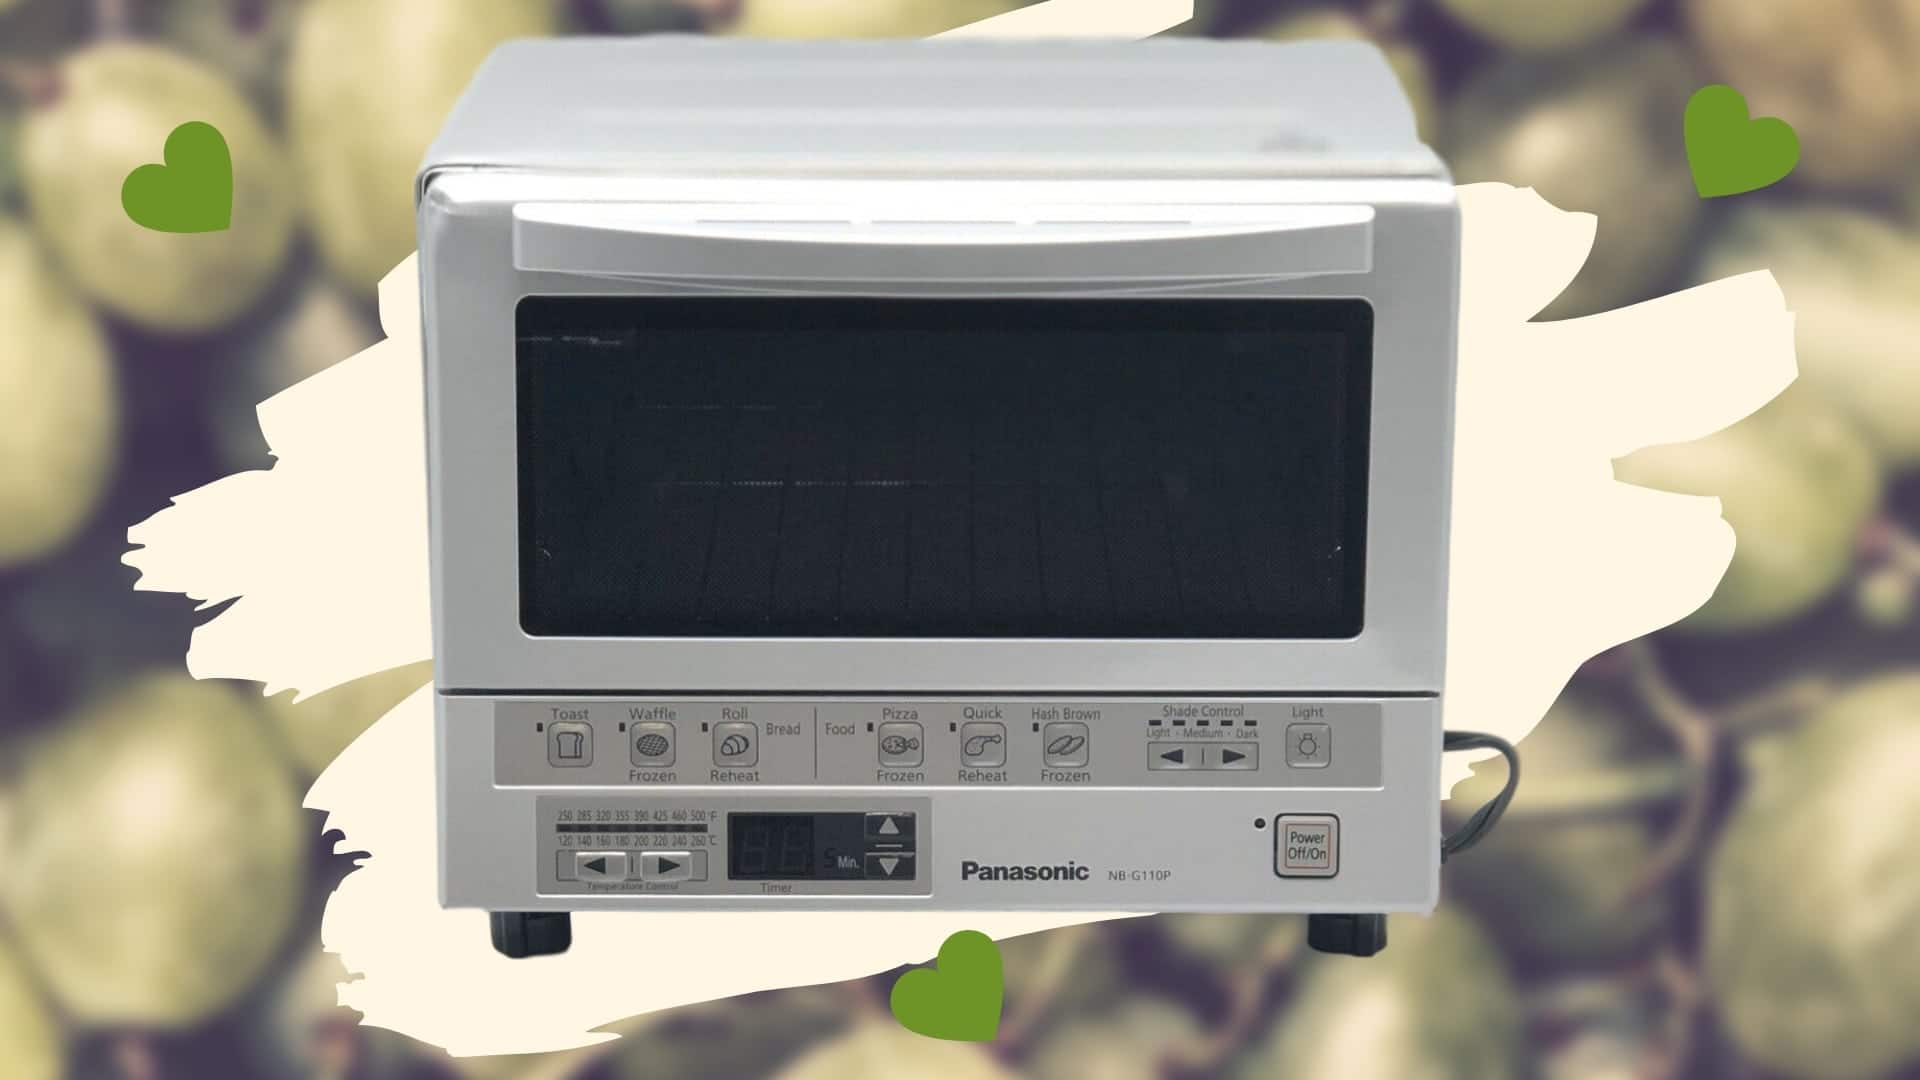 Panasonic Flashxpress Compact NB-G110P Toaster Oven featured image